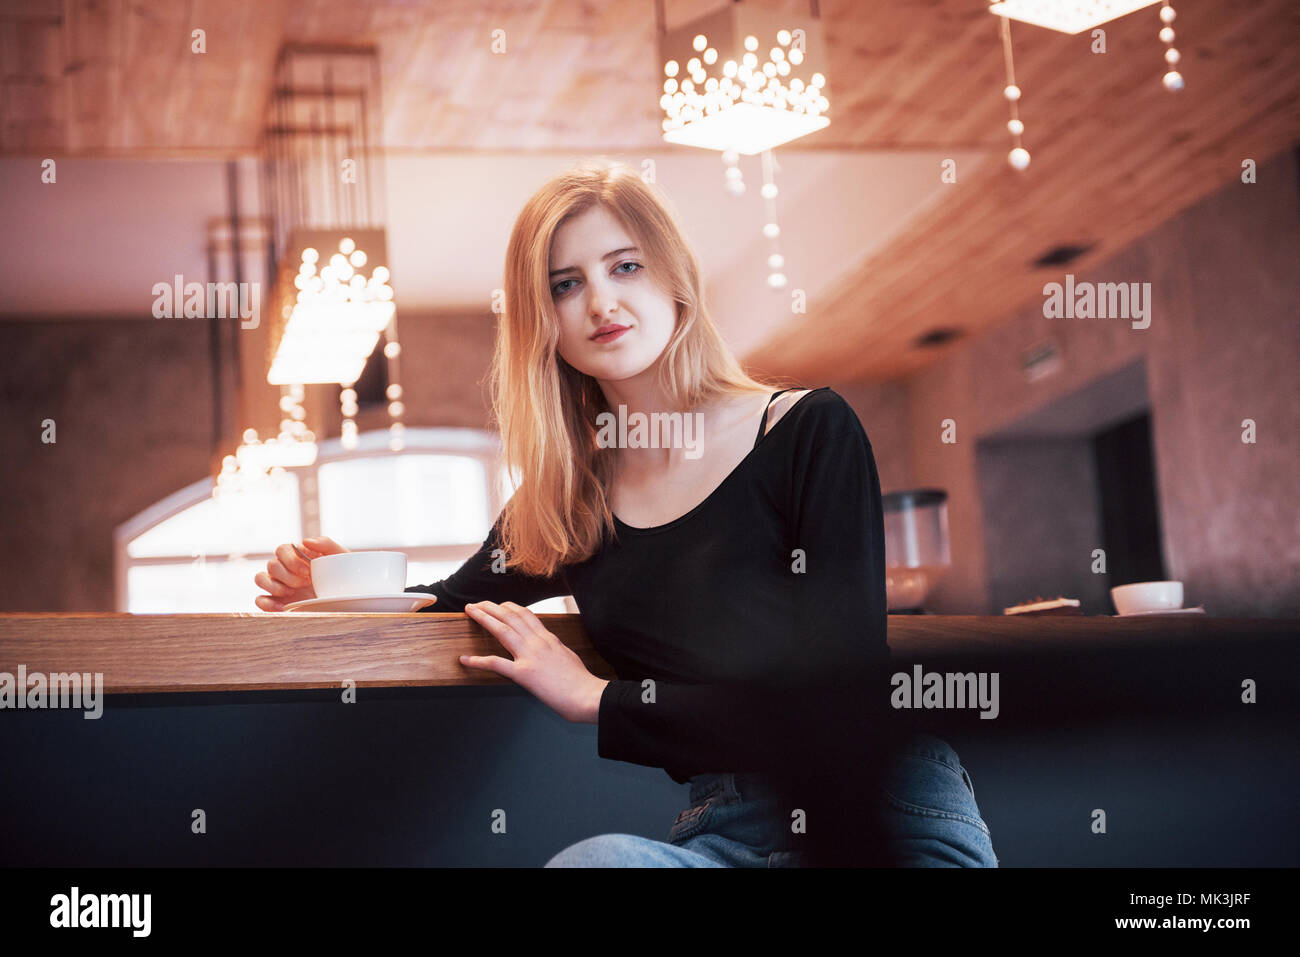 Happy smiling young woman using phone in a cafe. Beautiful girl in trendy spring colors - Stock Image